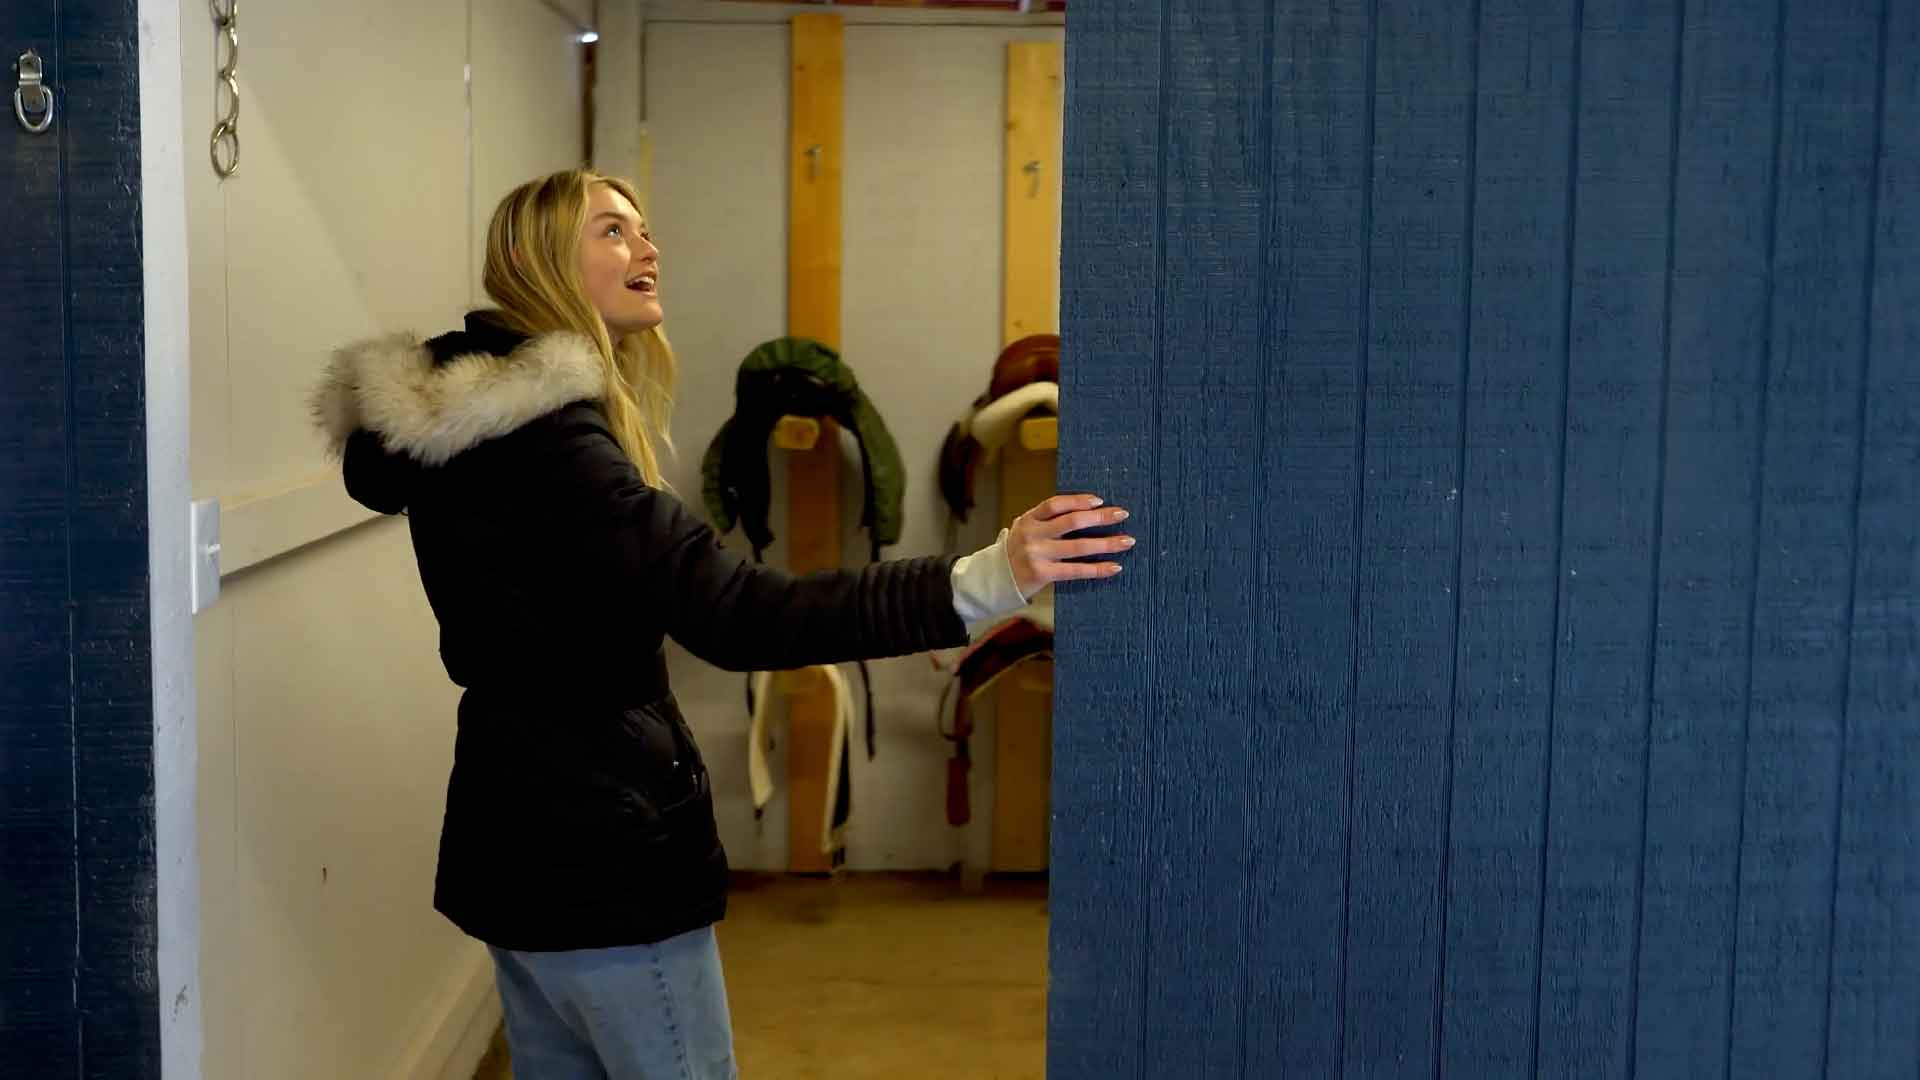 Willow Hand entering the tack room of her horse barn.